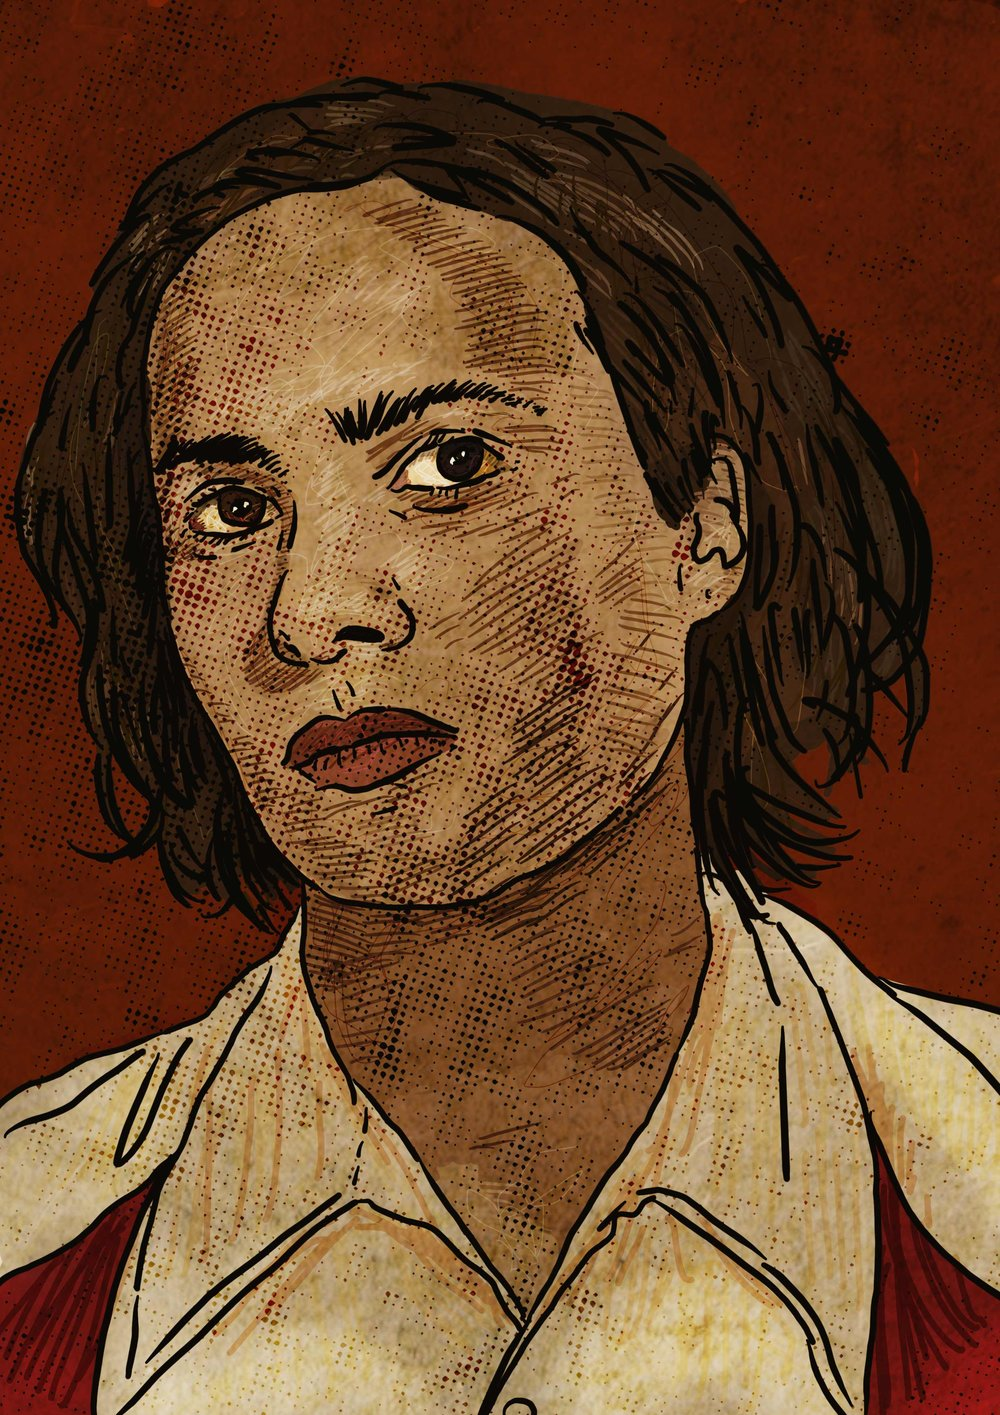 Nick Clark / Frank Dillane   - Interested in purchasing an art print? Visit my  shop .